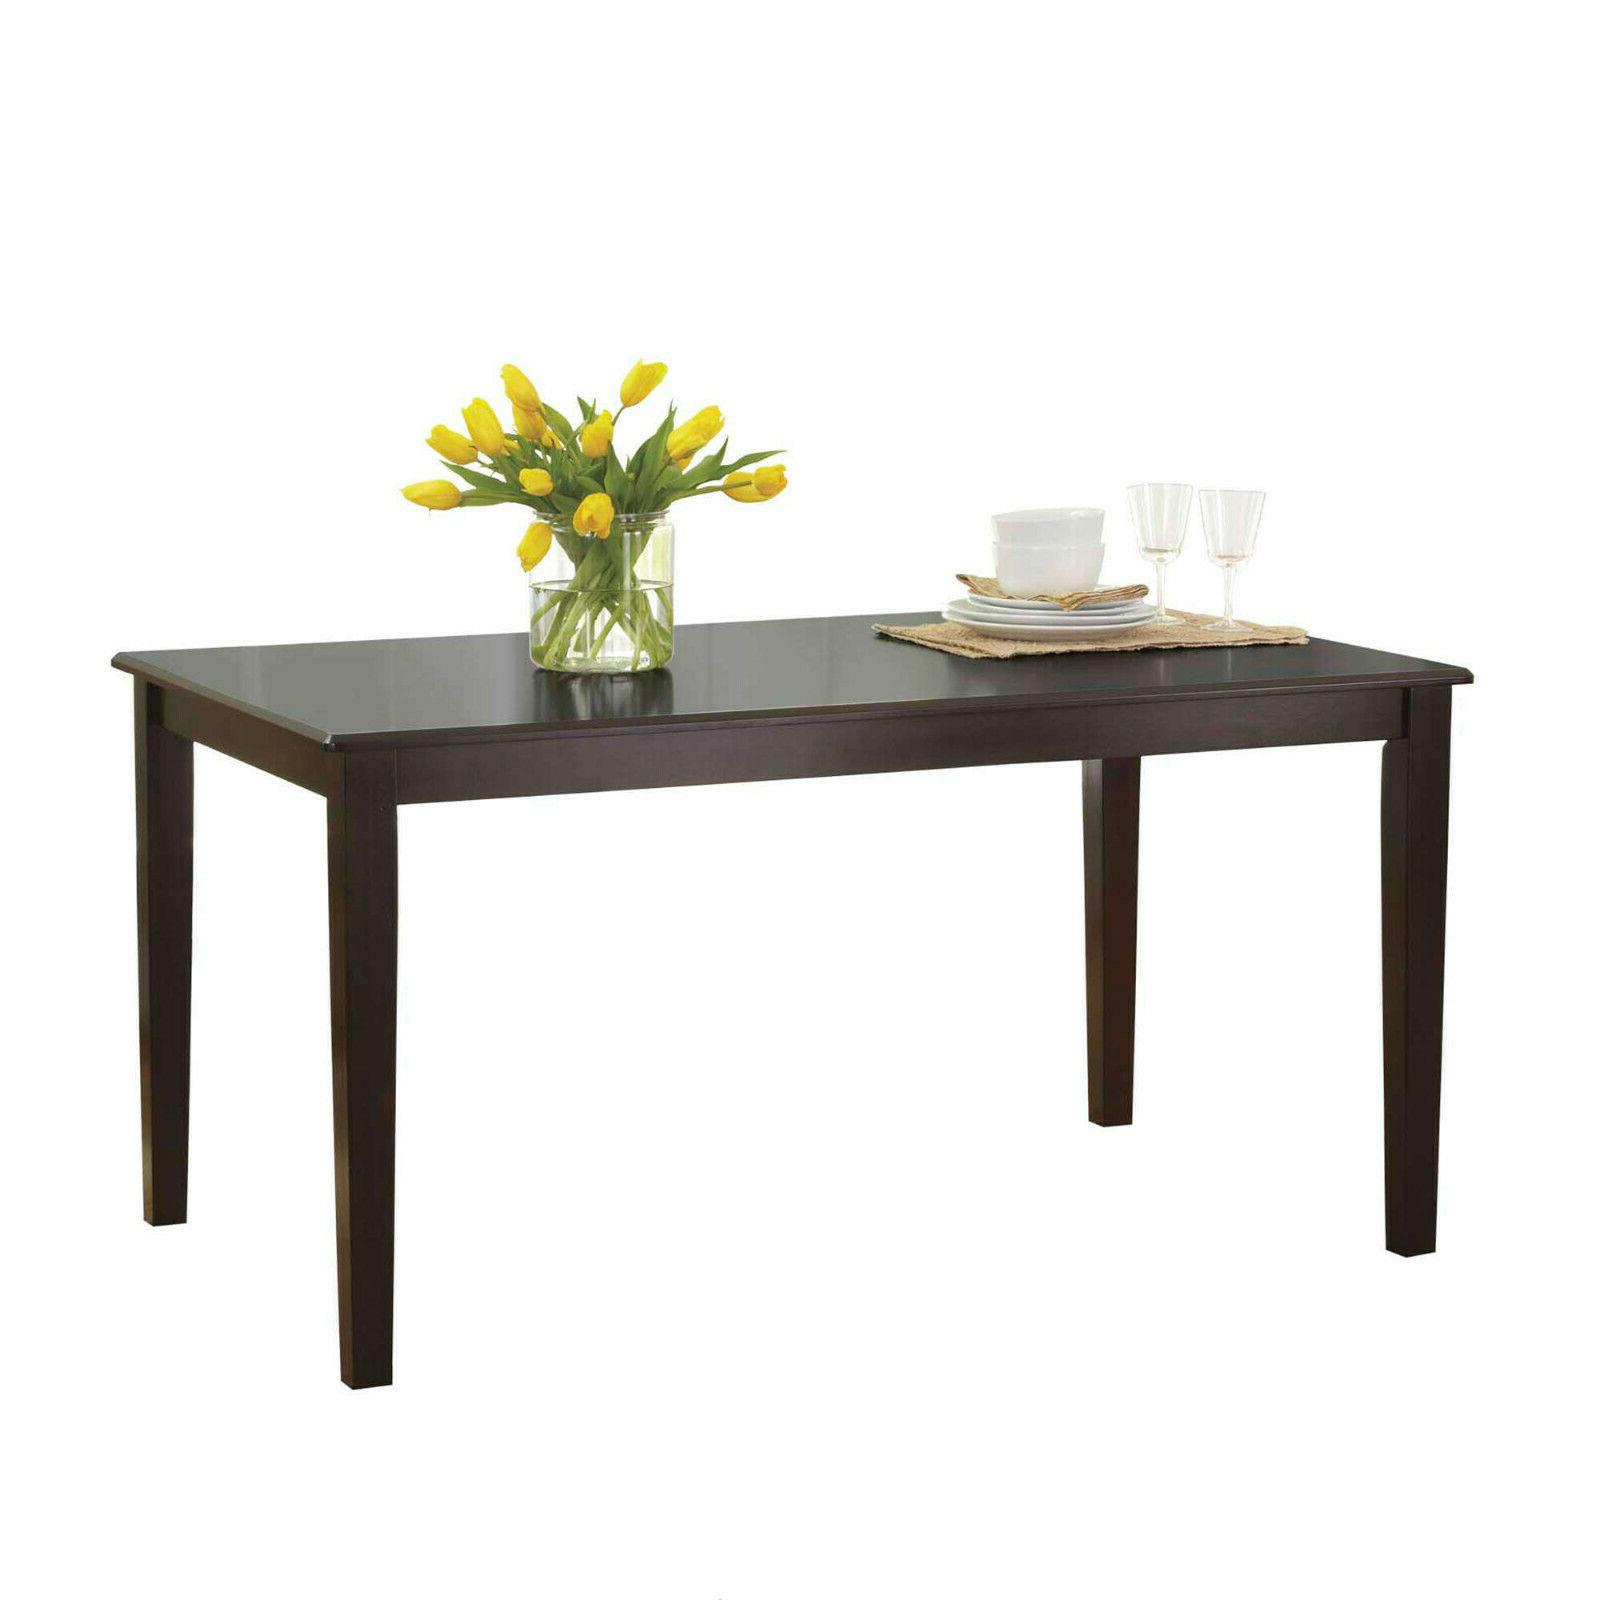 7 Piece Table Farmhouse Wooden and